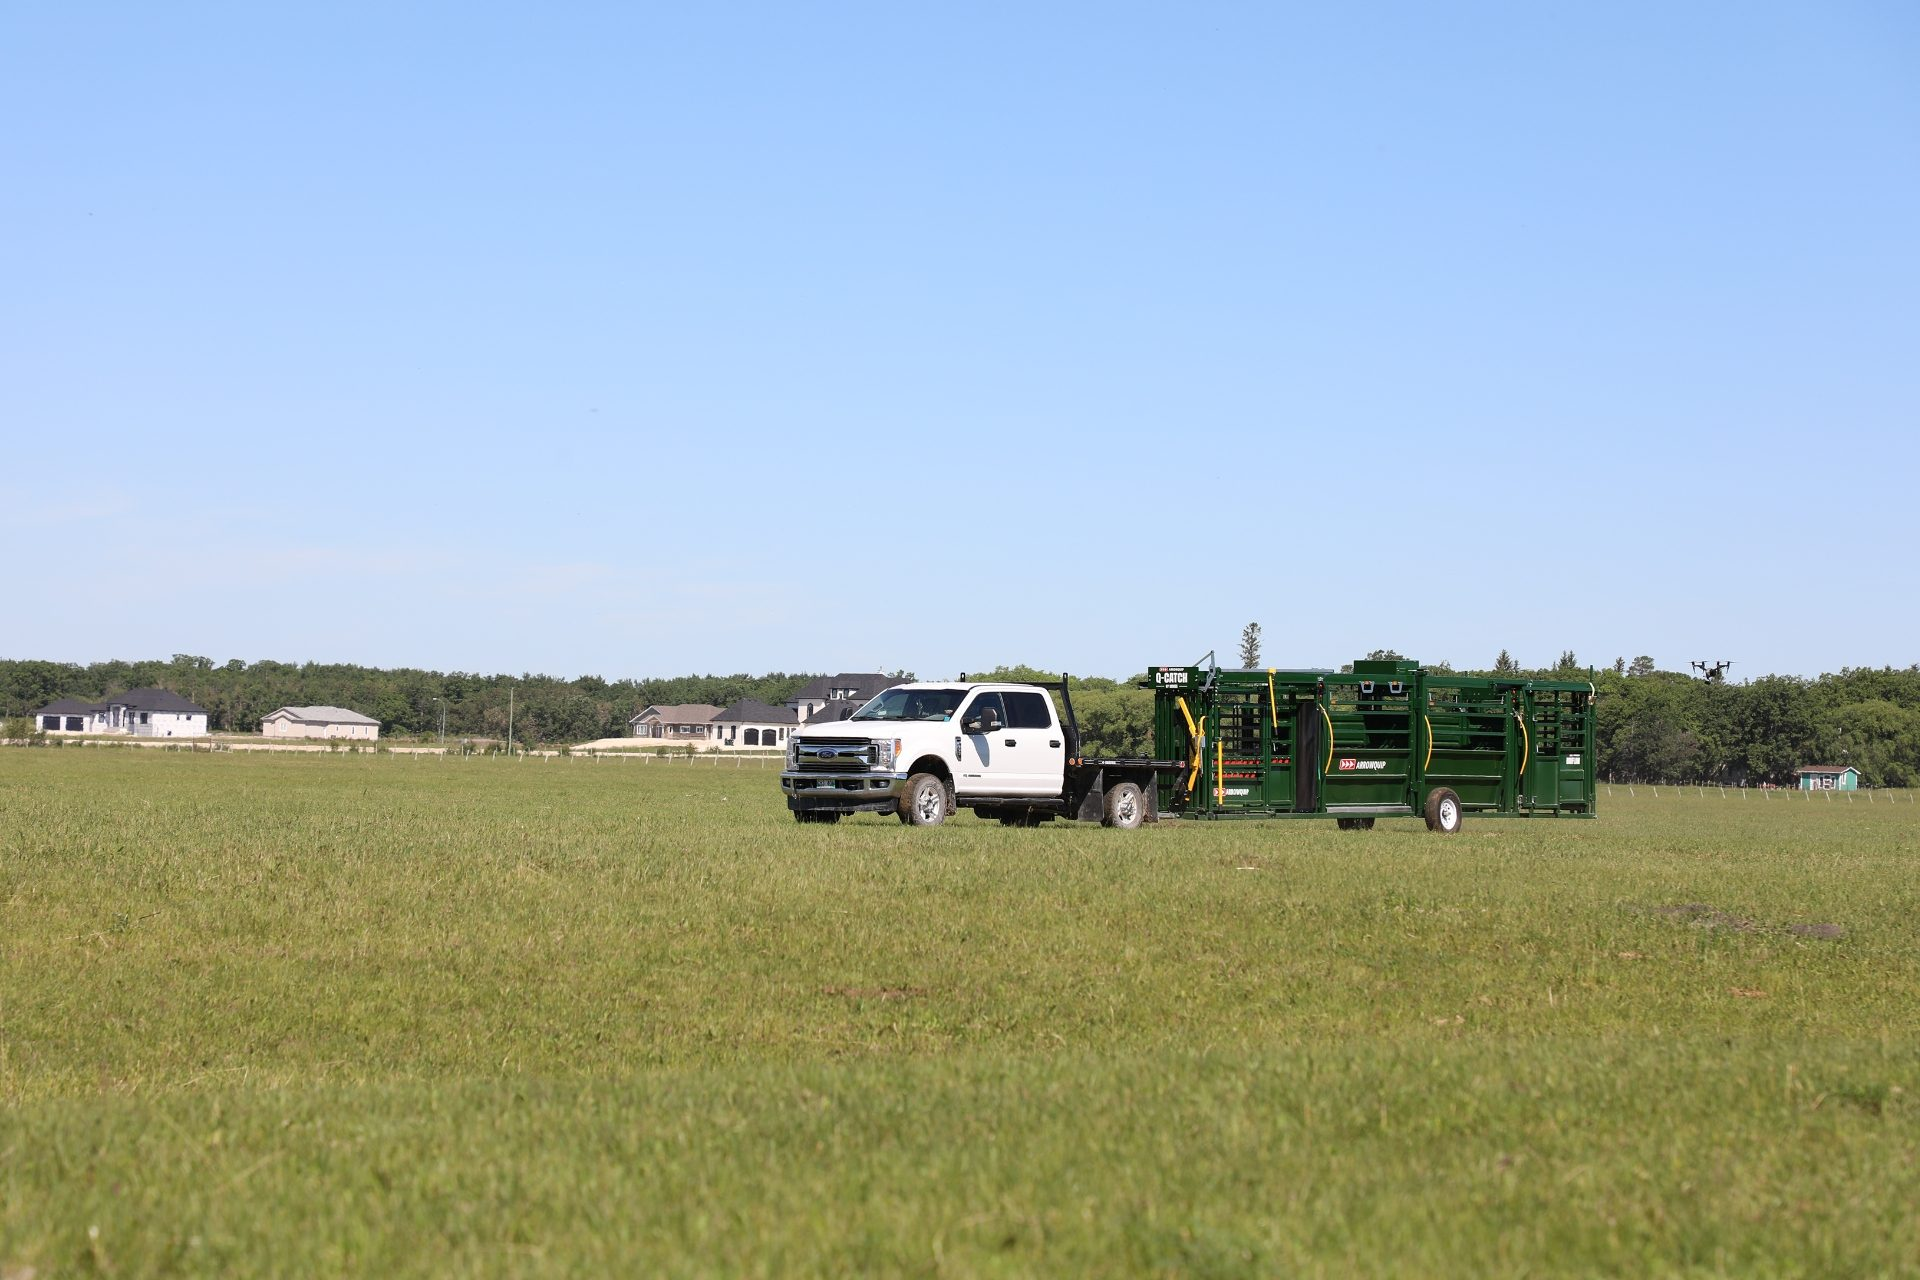 Q-Catch 87 Series Portable Cattle Handling System with 18' Alley being towed across grass field